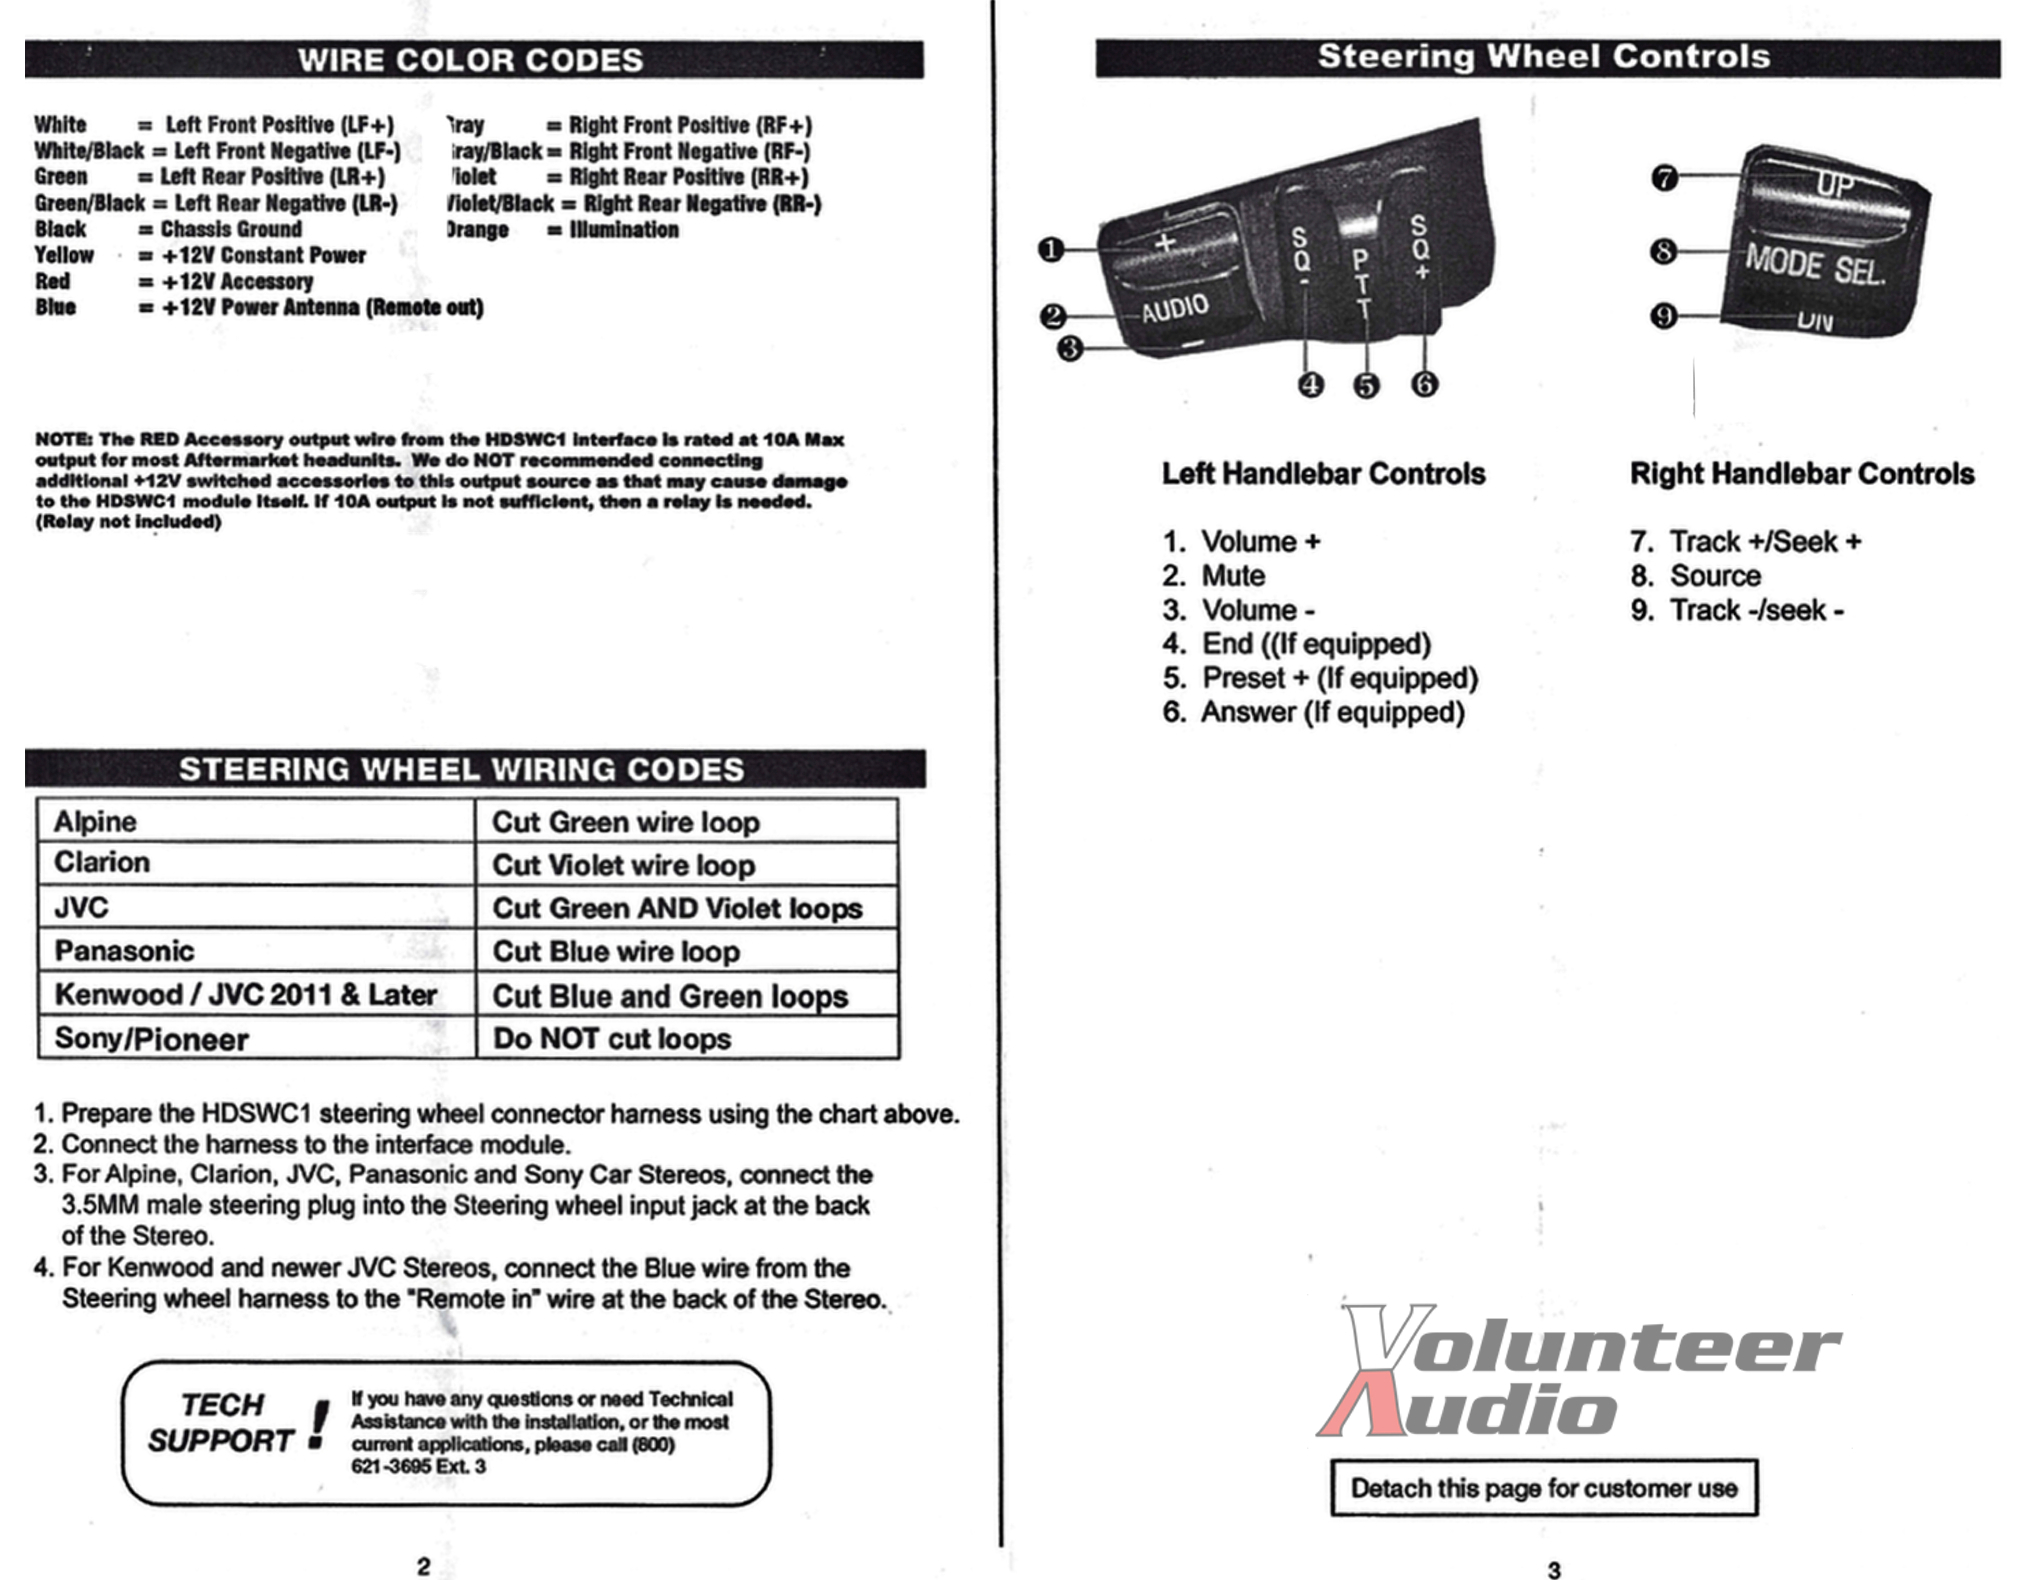 inst1 sony marine stereo wiring diagram dolgular com scosche loc2sl wiring diagram at cos-gaming.co